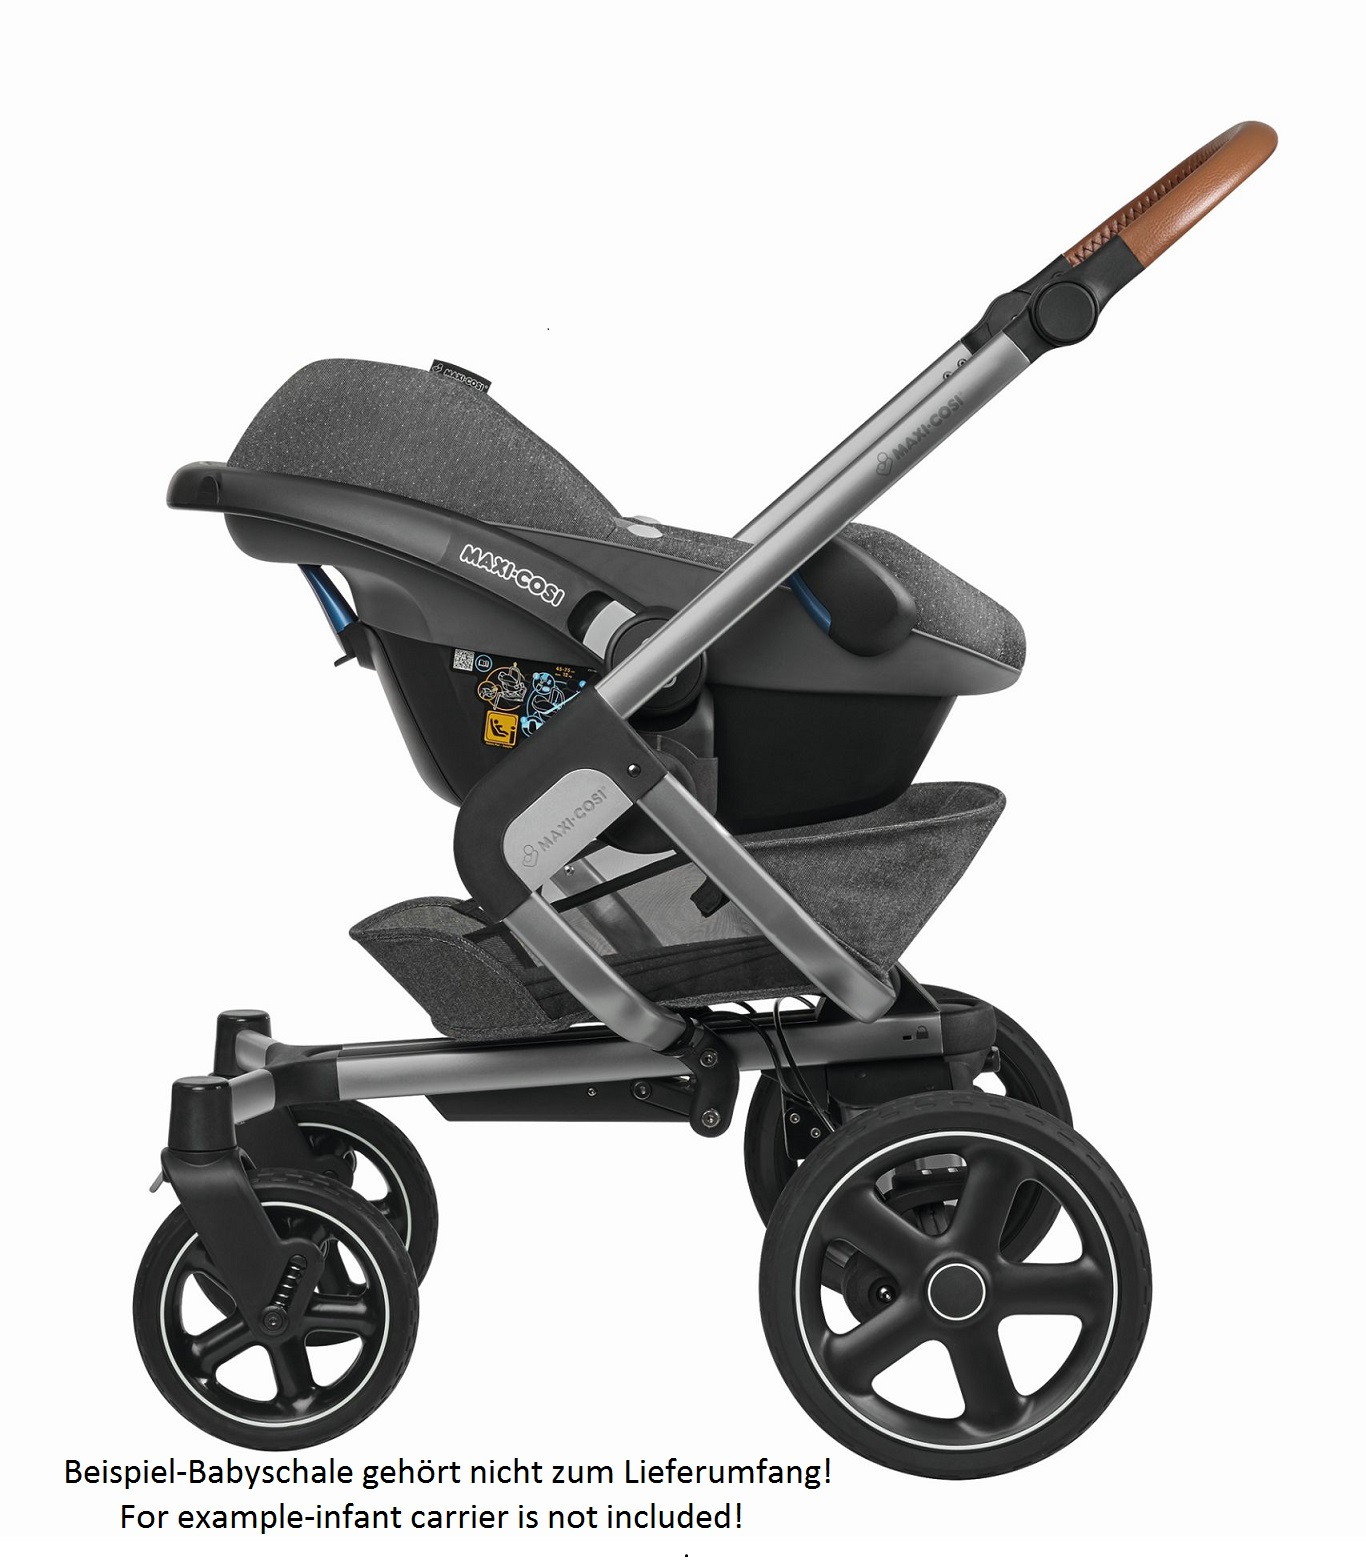 maxi cosi stroller nova 4 wheels buy at kidsroom strollers. Black Bedroom Furniture Sets. Home Design Ideas